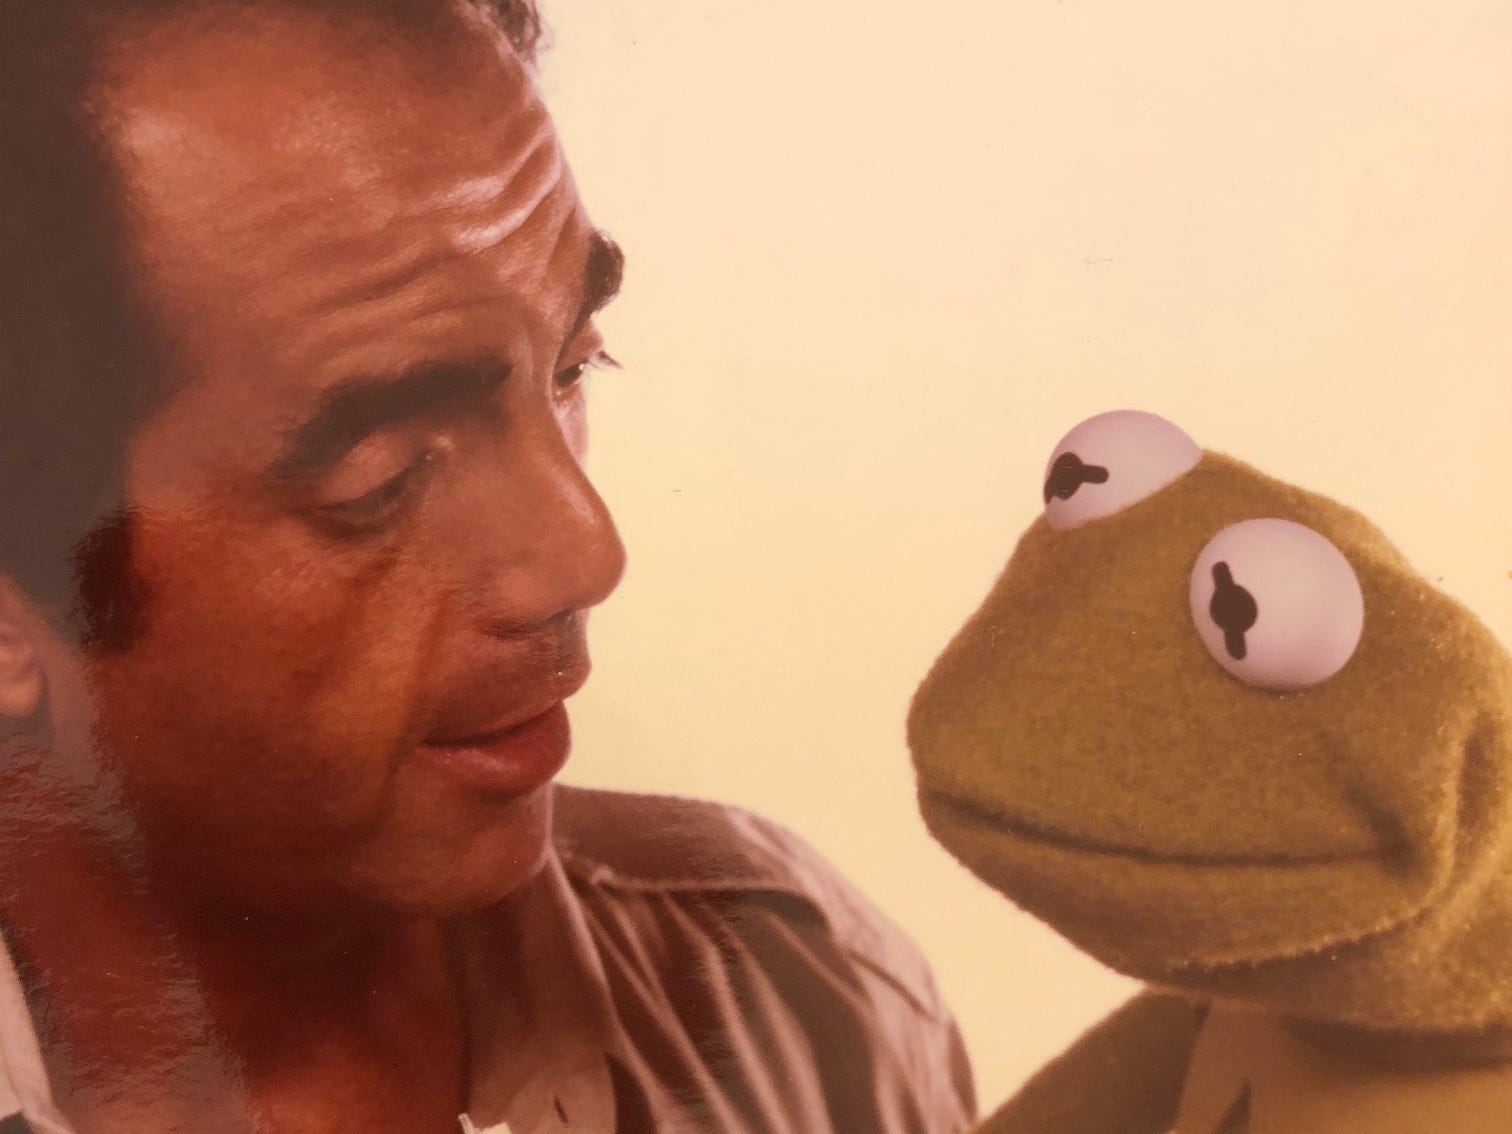 James Frawley, shown directing Kermit the Frog.